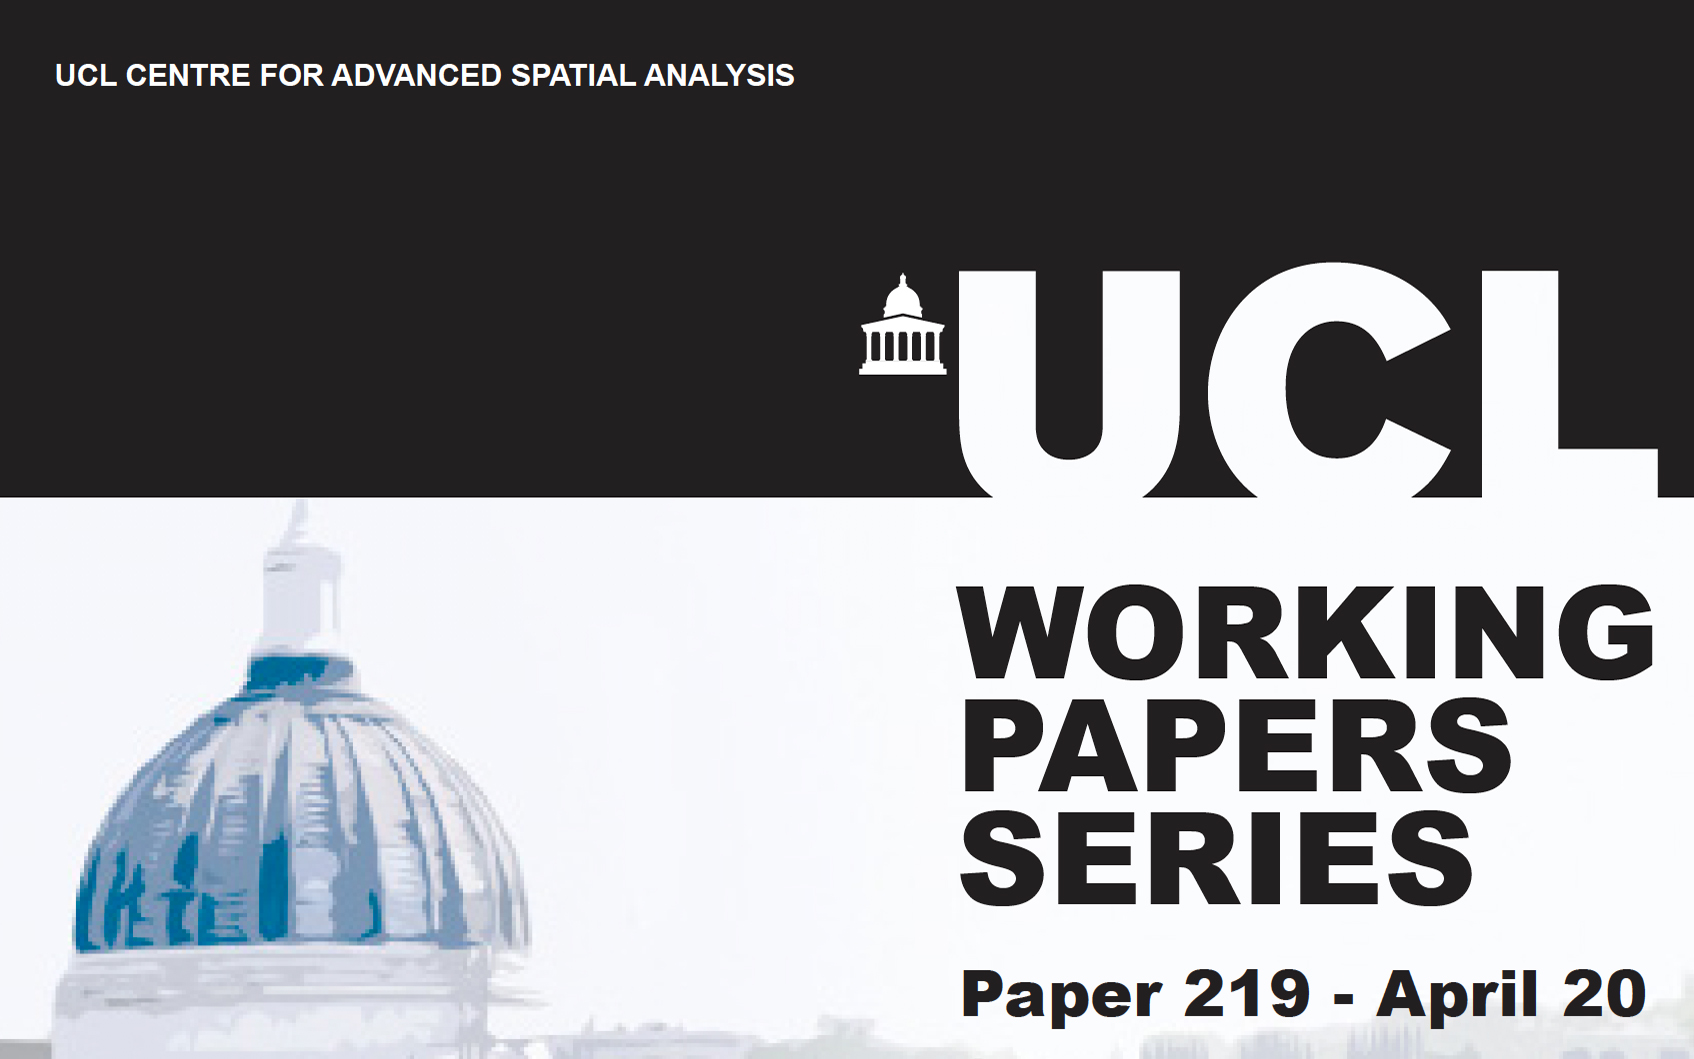 Working Paper 219